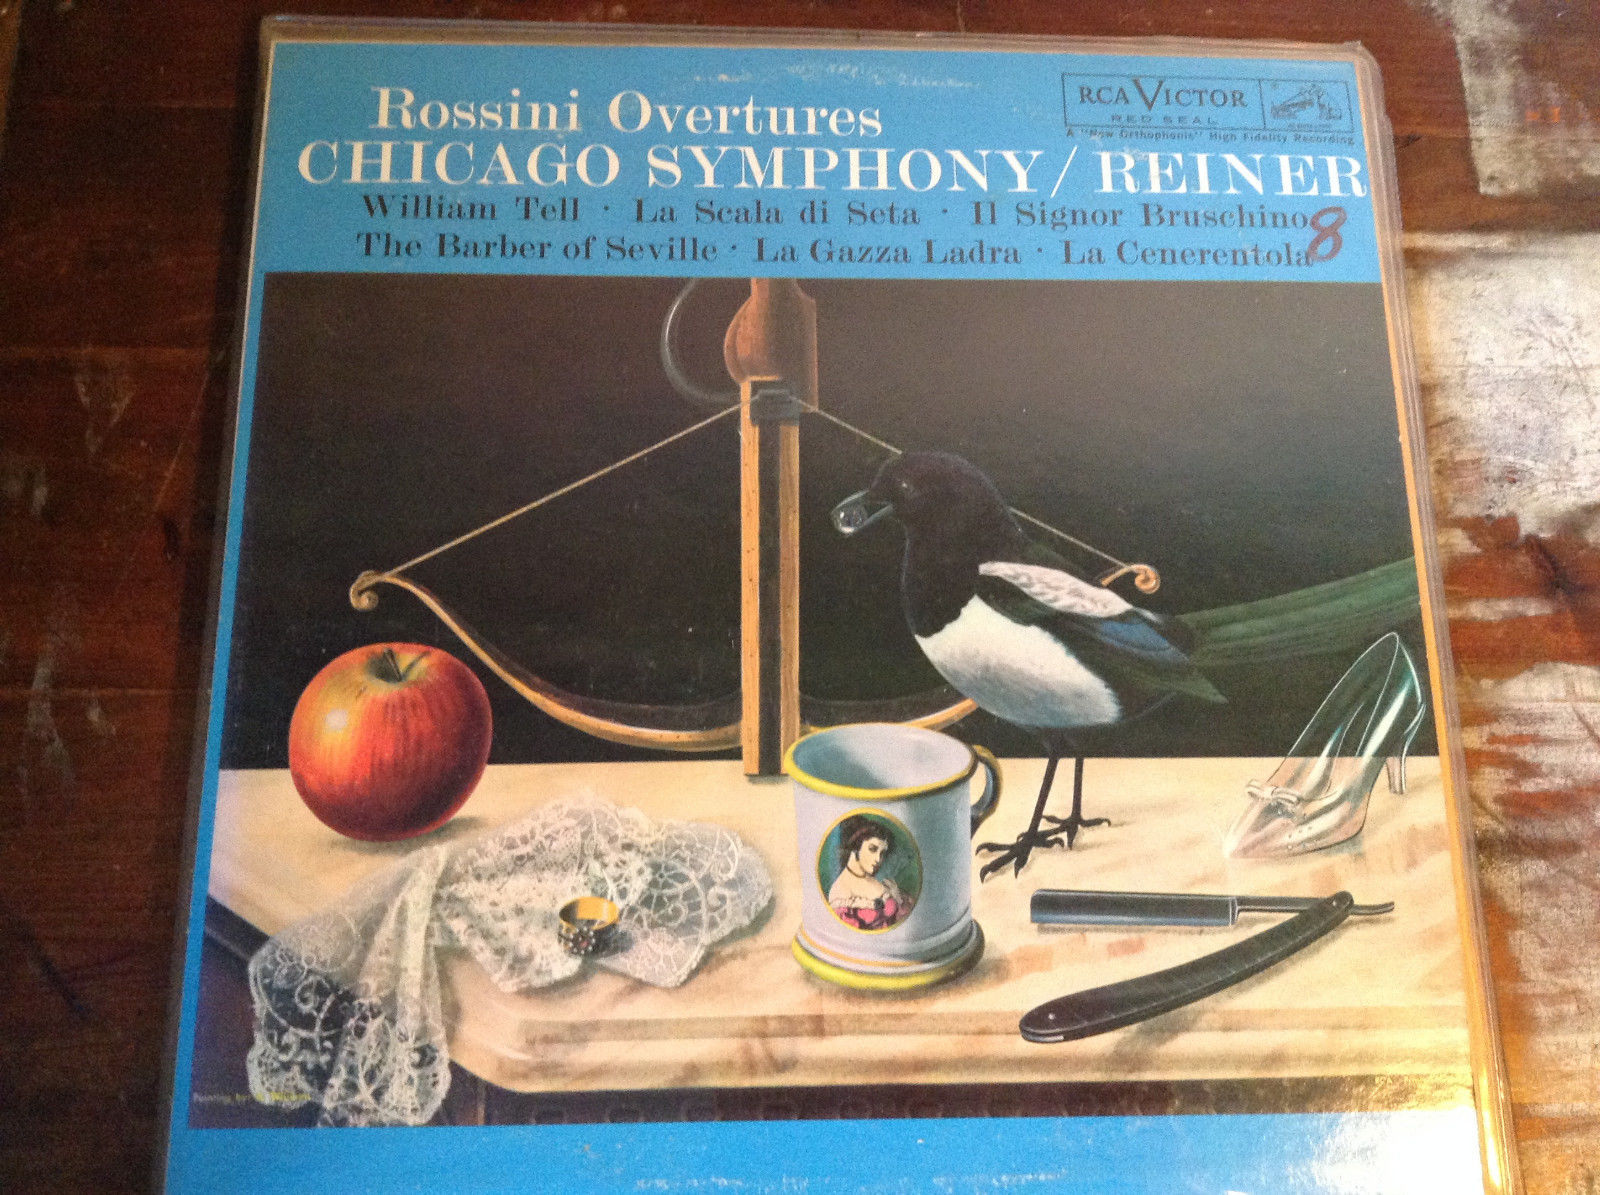 Rossini Overtures Chicago Symphony Reiner Complete with Records